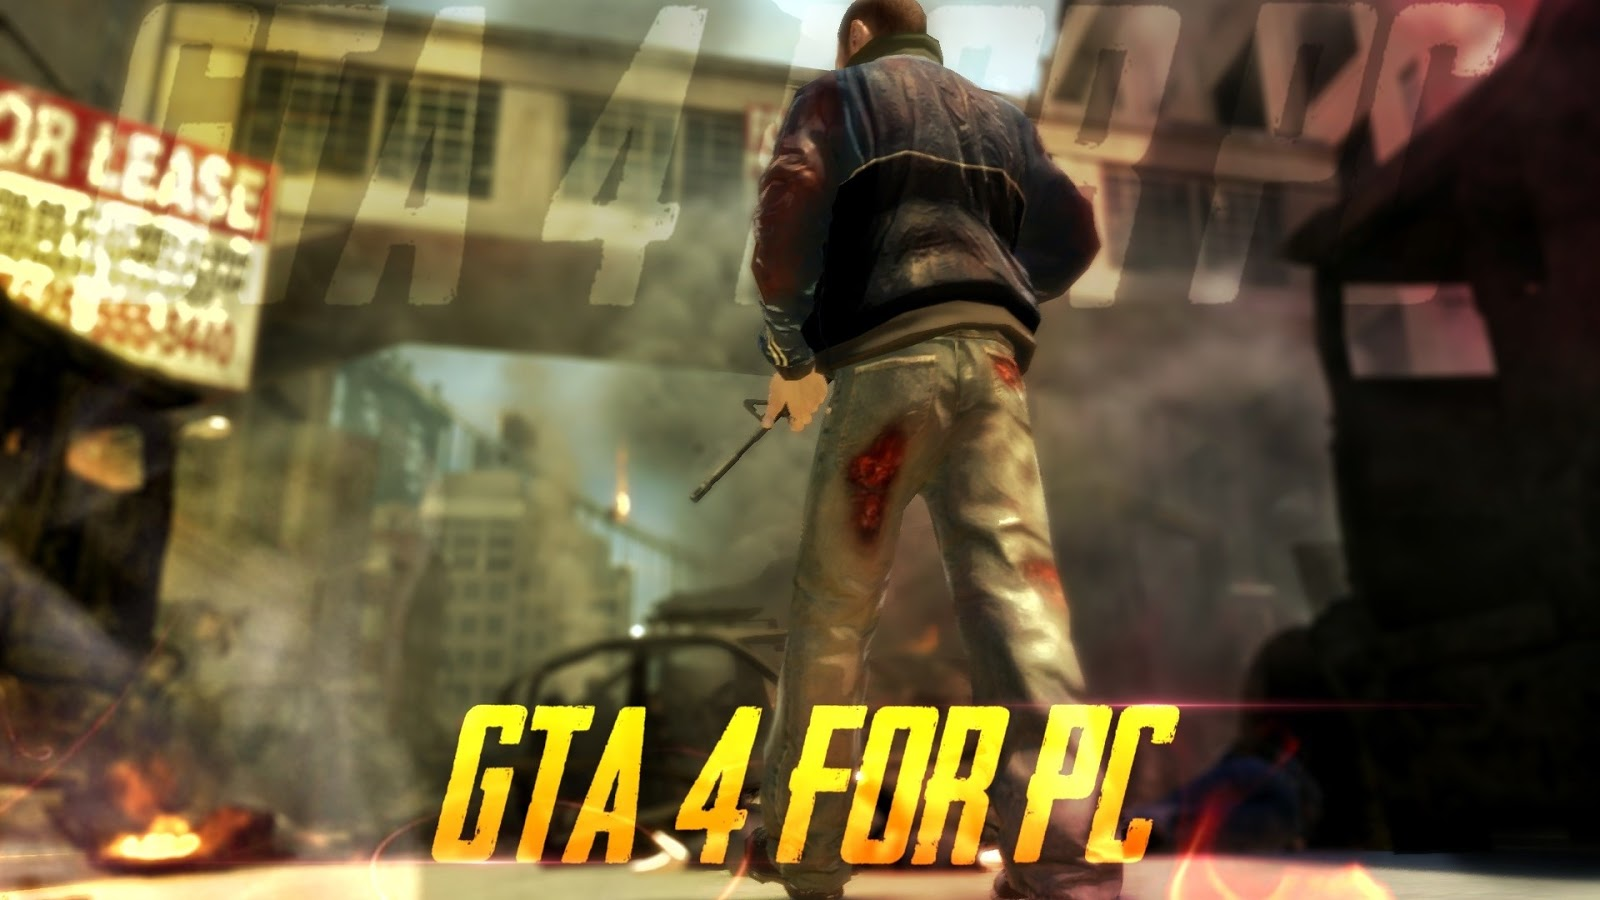 GTA 4 Highly Compressed in Parts